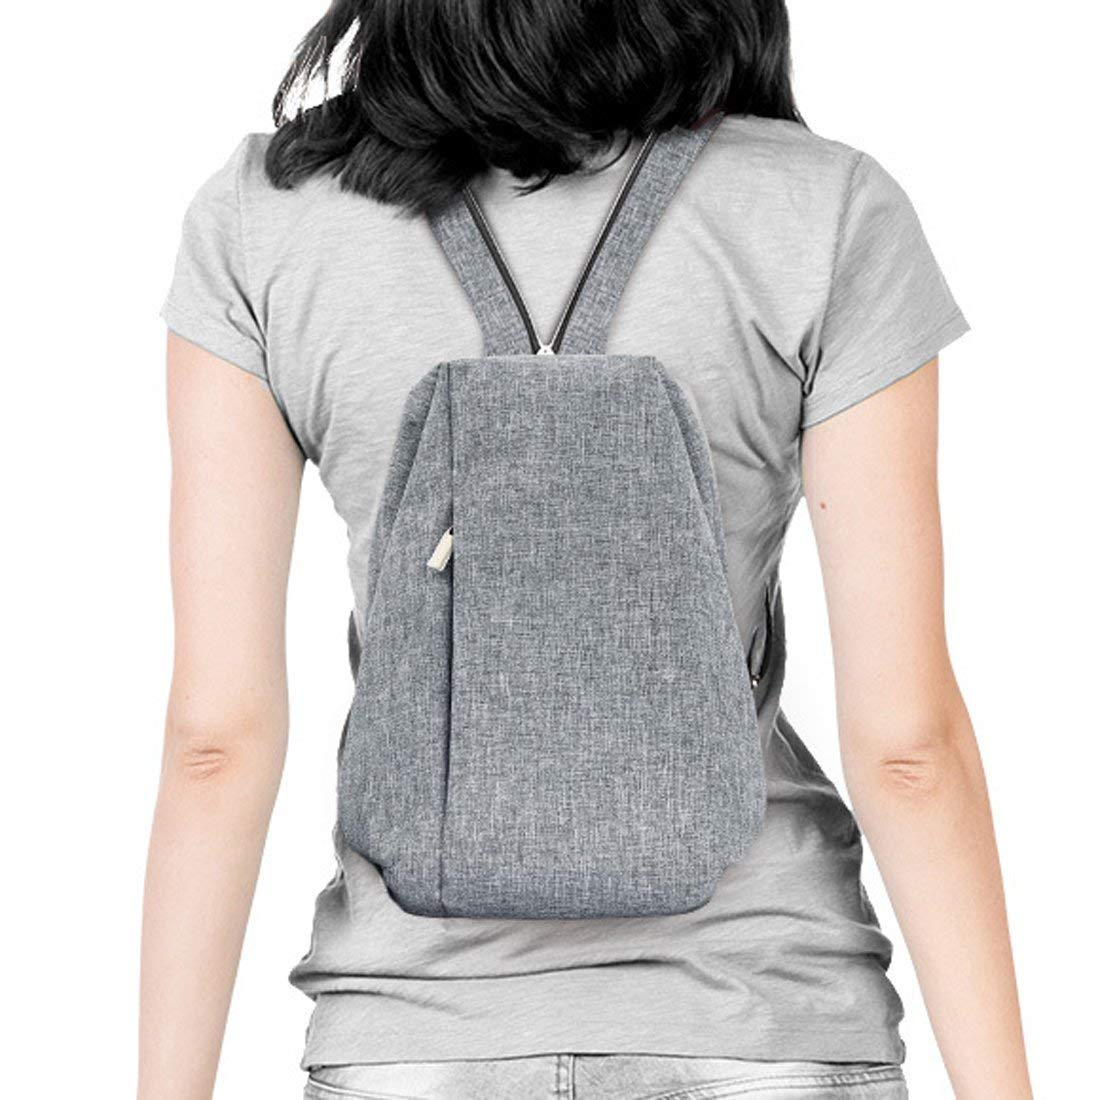 Computers & Accessories Heartbeat Anti Theft Backpack Waterproof Backpackt Cross-Small Crossbody Backpack for Men & Women by Heartbeat